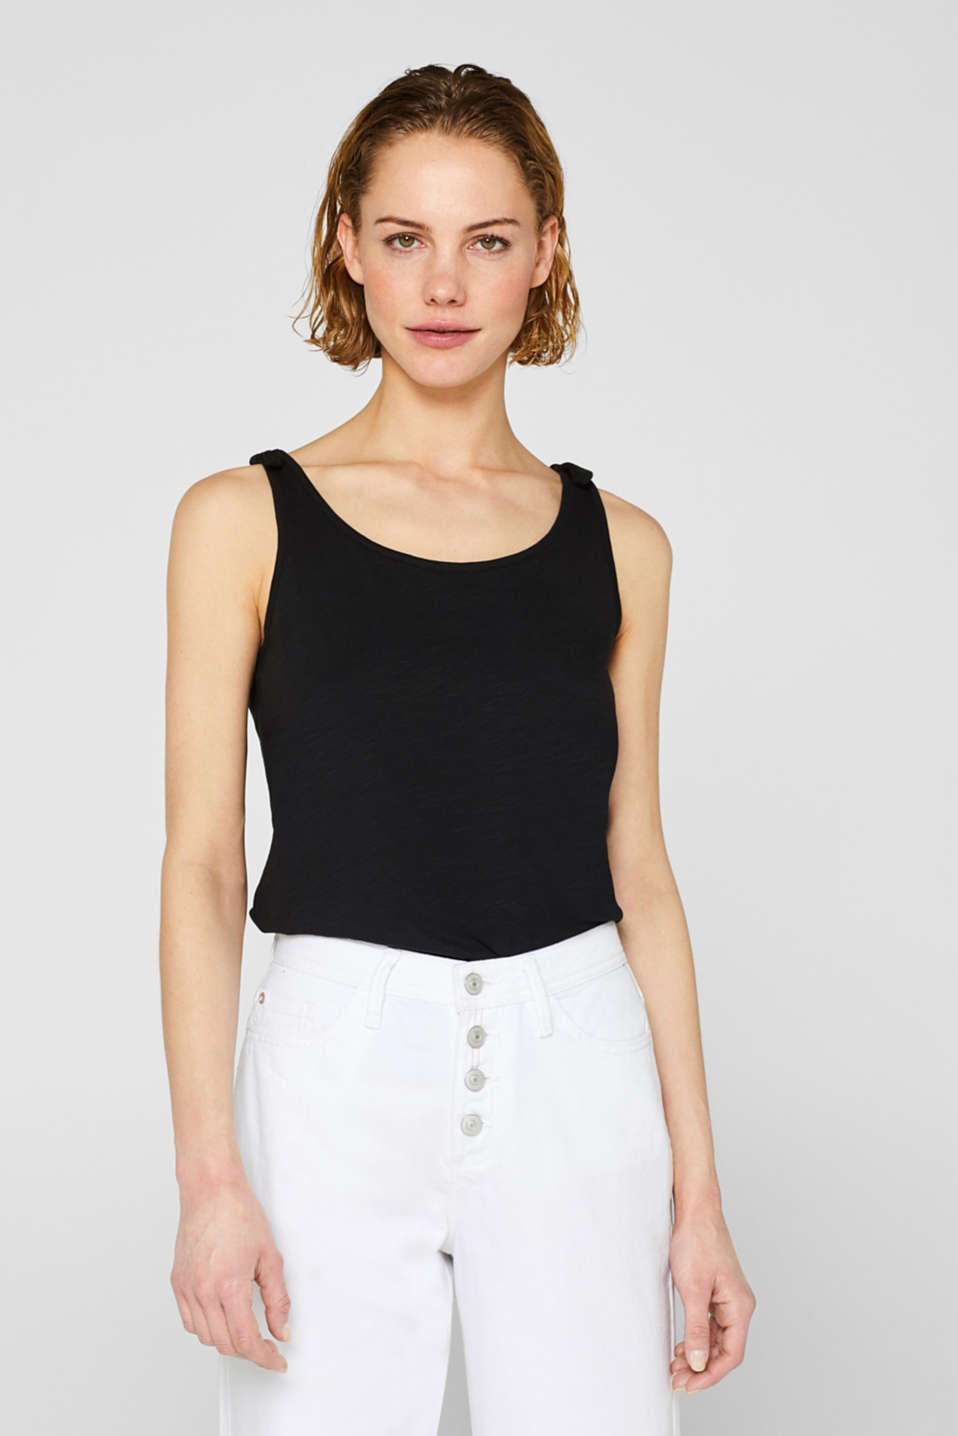 Esprit - Slub top with bow detail shoulder straps, 100% cotton